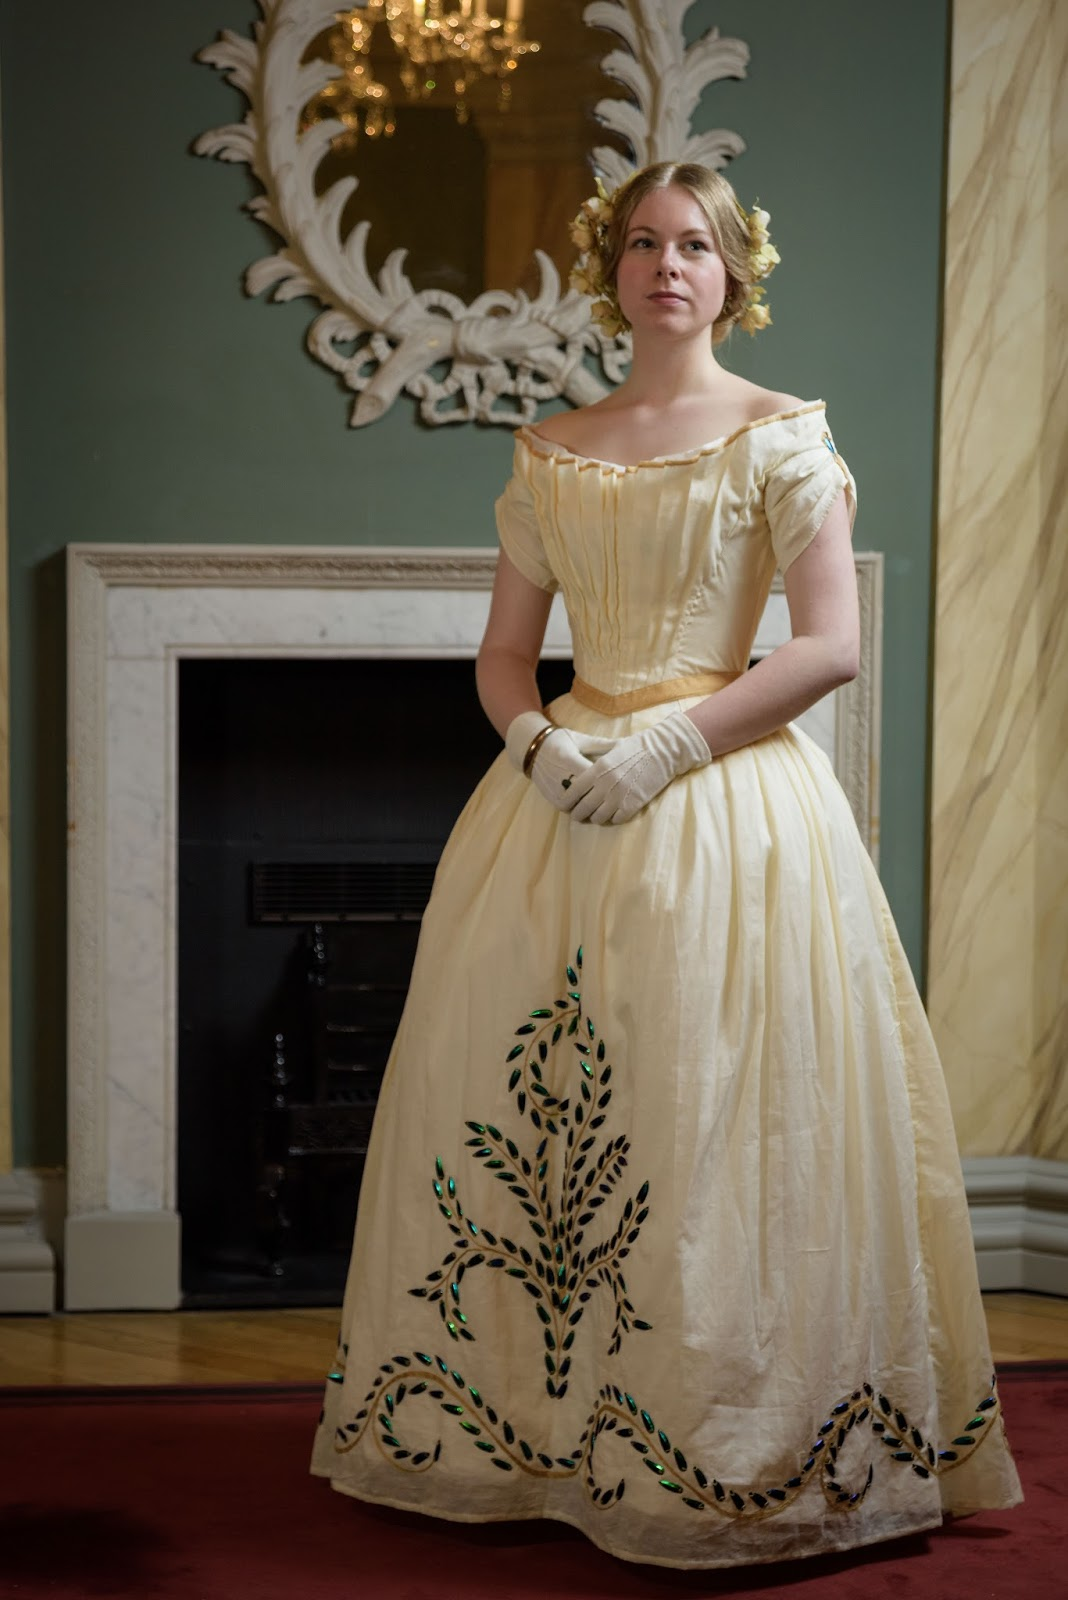 Isabel Northwode Costumes: Beetlewing Ballgown and the Bath ...